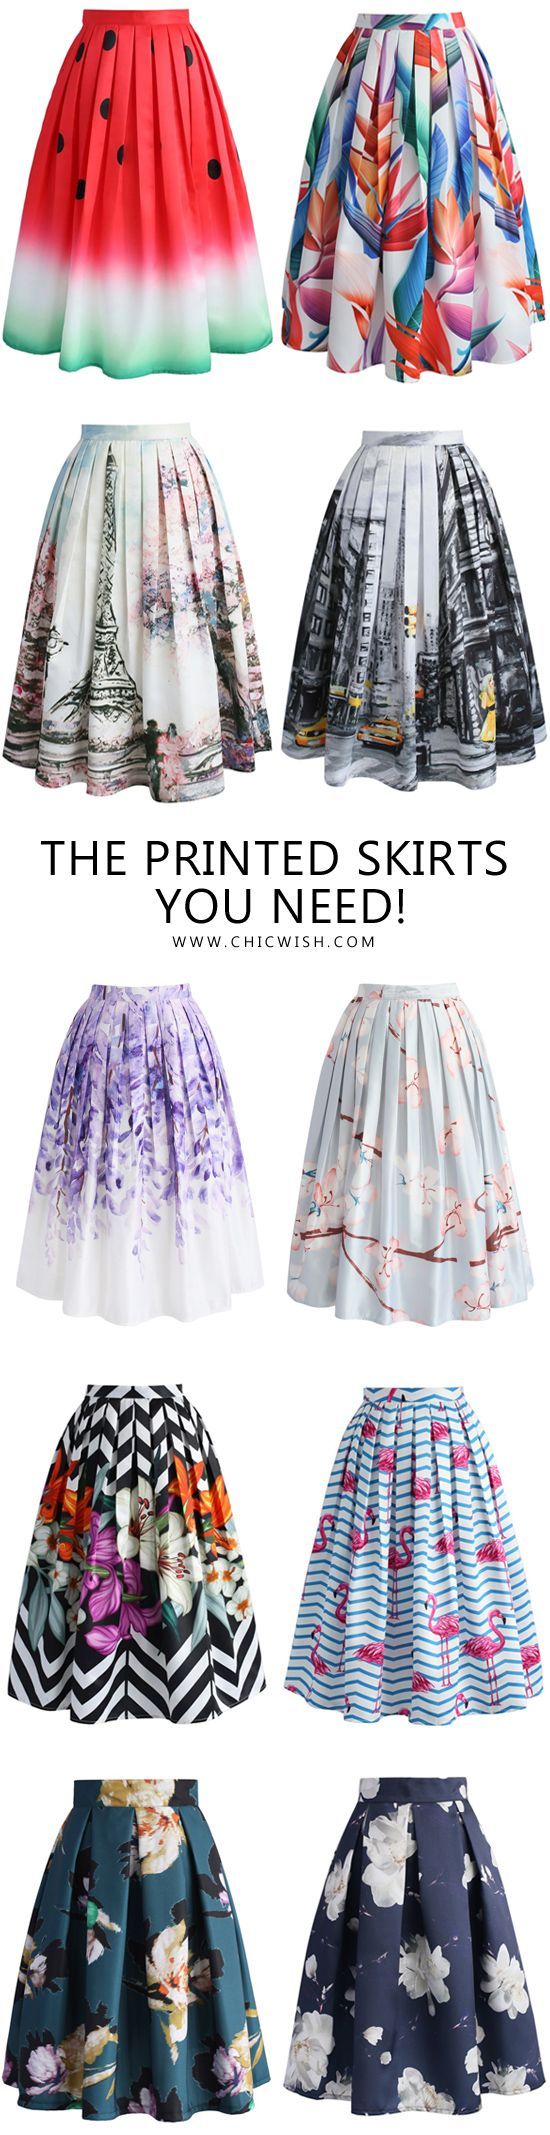 now all of a sudden I want to own these skirts. I own 1 skirt and never wear it but now Daniell wants to do it! lol